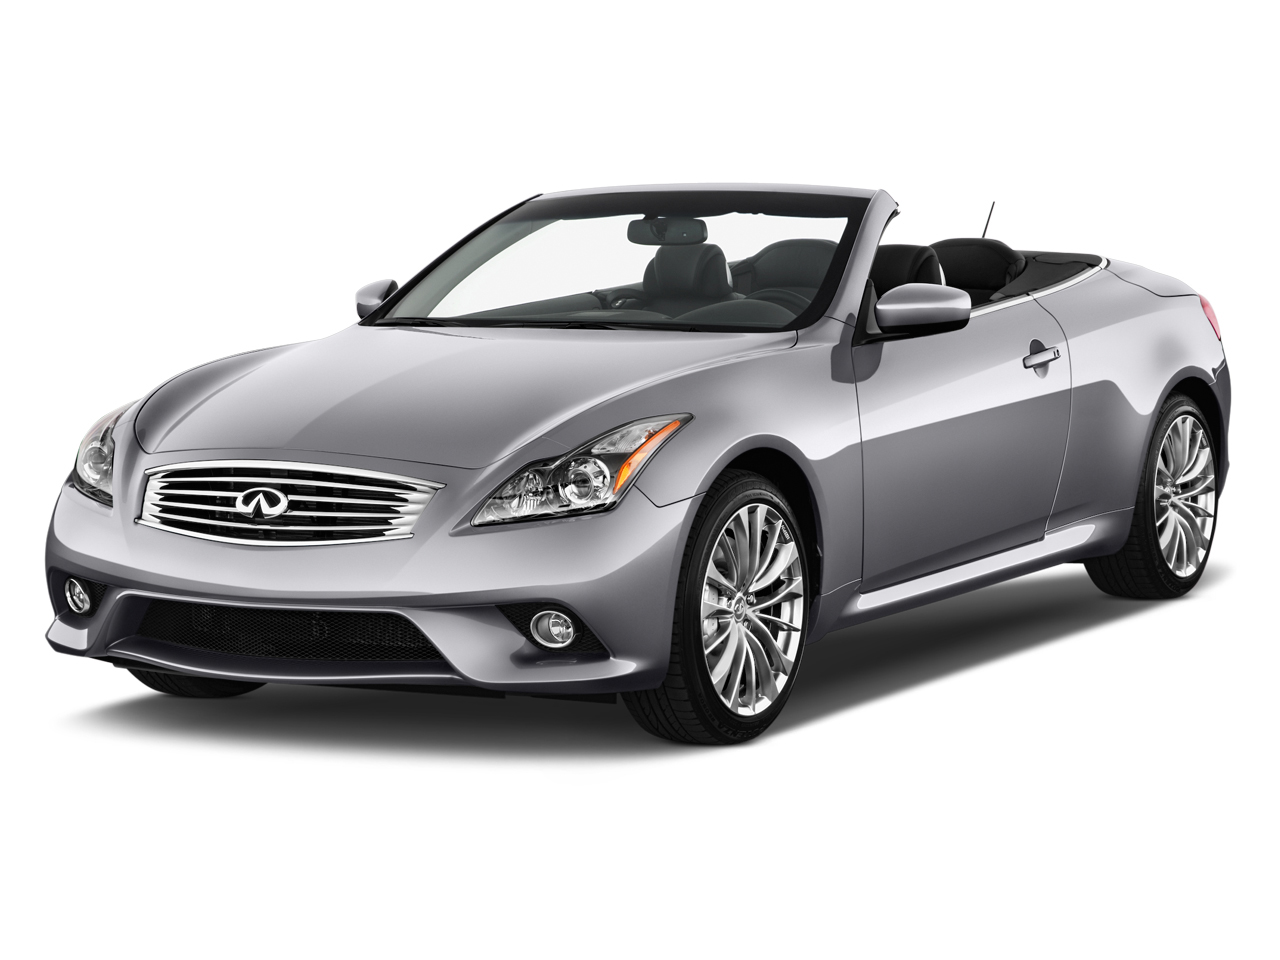 2011 Infiniti G37 Convertible Review Ratings Specs